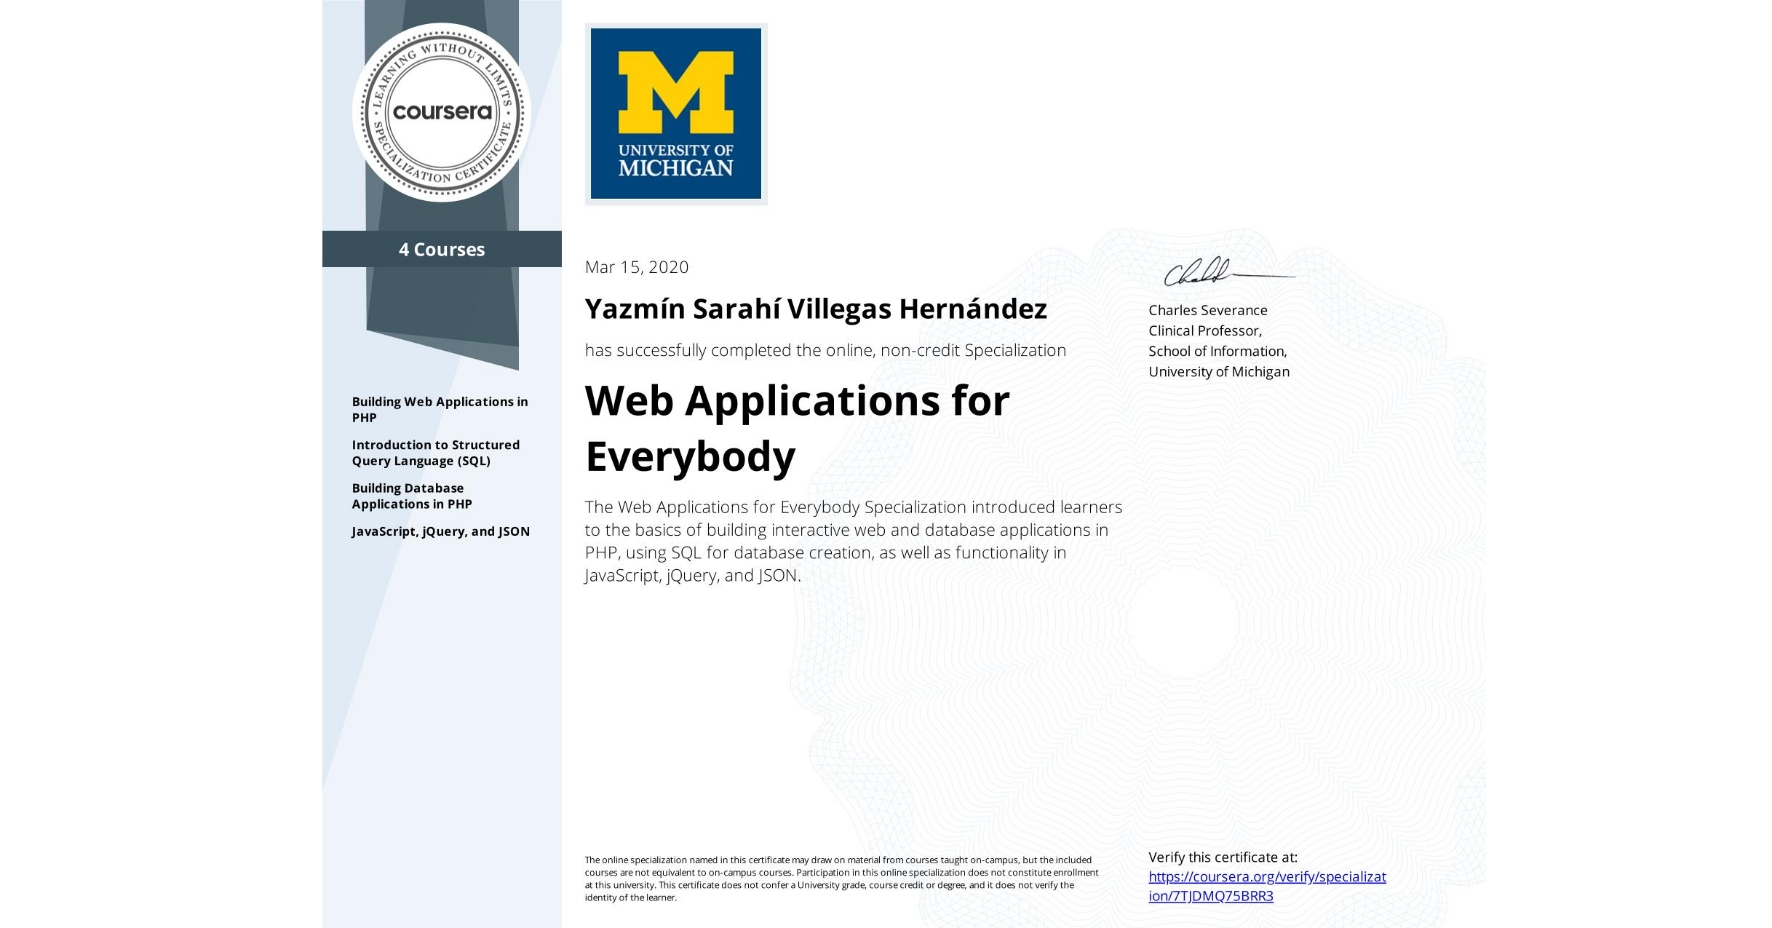 View certificate for Yazmín Sarahí Villegas Hernández, Web Applications for Everybody, offered through Coursera. The Web Applications for Everybody Specialization introduced learners to the basics of building interactive web and database applications in PHP, using SQL for database creation, as well as functionality in JavaScript, jQuery, and JSON.